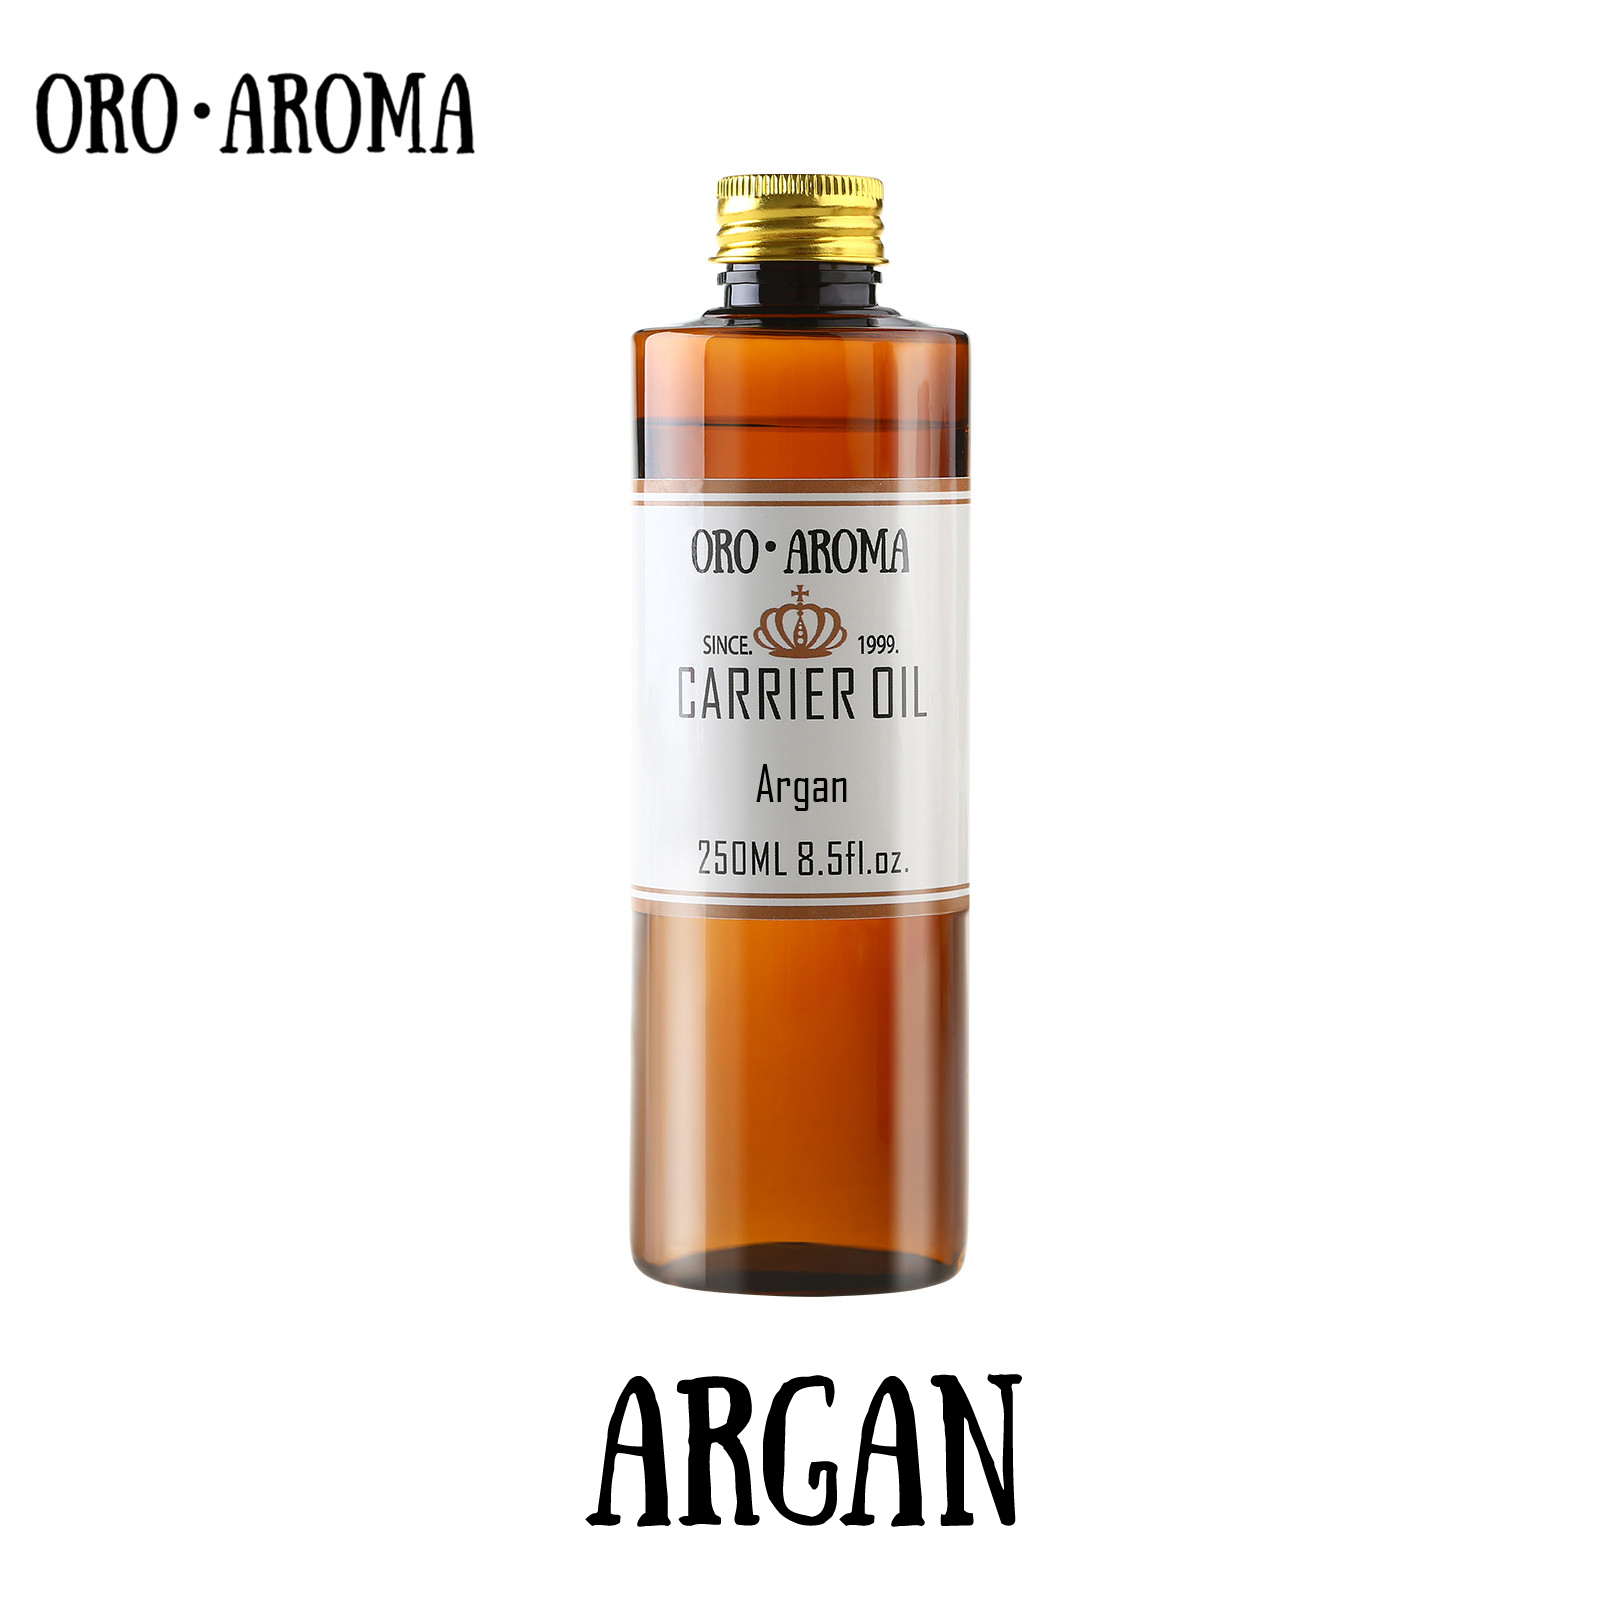 Famous brand oroaroma natural Argan Morocco nut oil essential oil natural aromatherapy highcapacity skin body care massage spa image